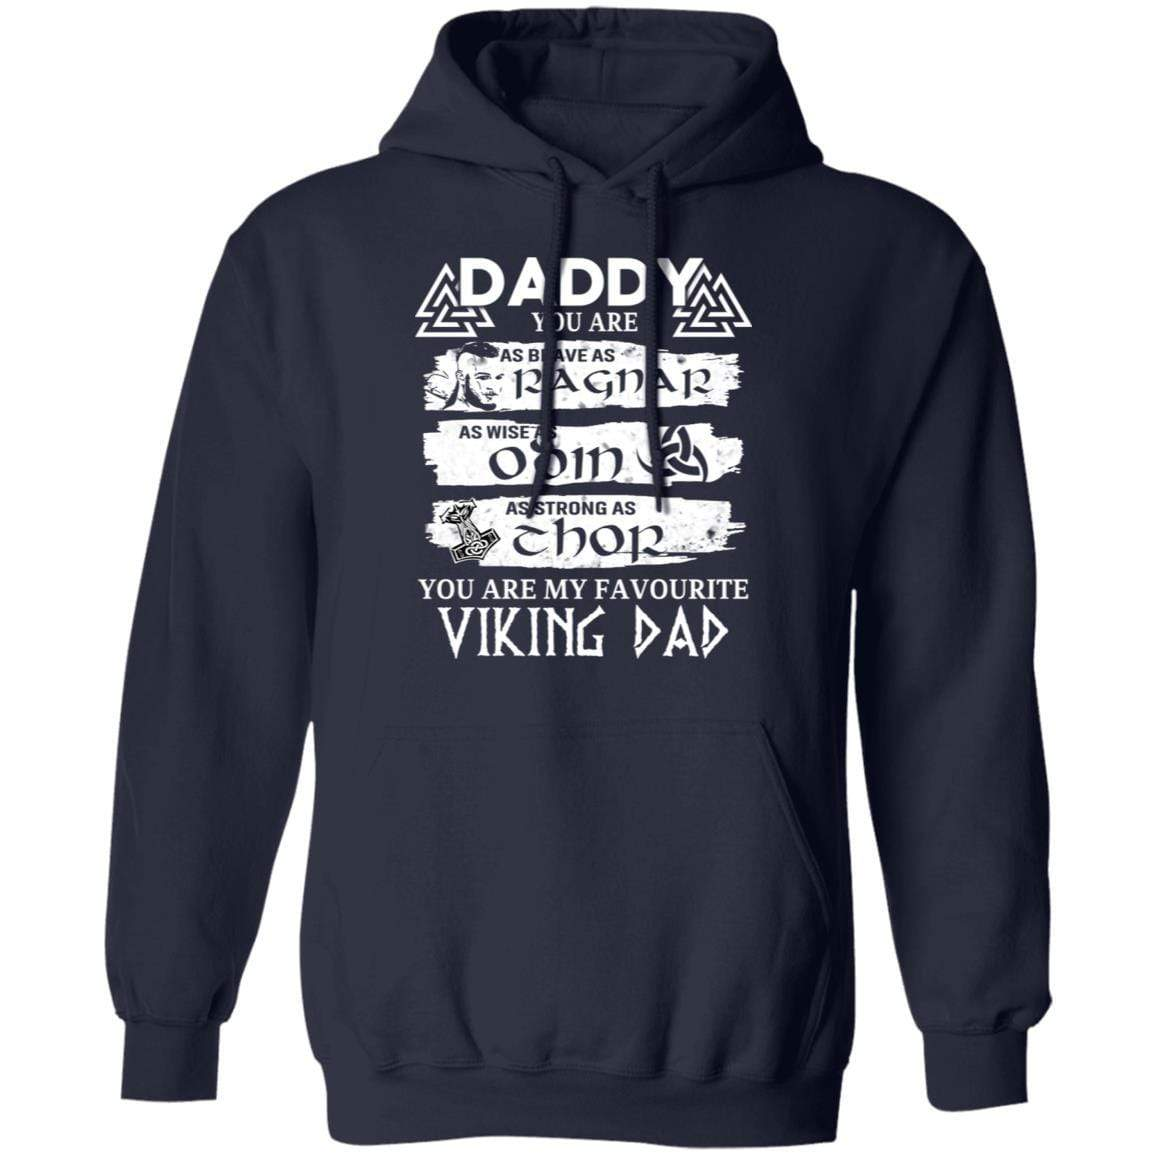 Daddy You Are As Brave As Ragnar As Wise As Odin As Strong As Thor Viking Dad T-Shirts, Hoodies 541-4742-86894539-23135 - Tee Ript